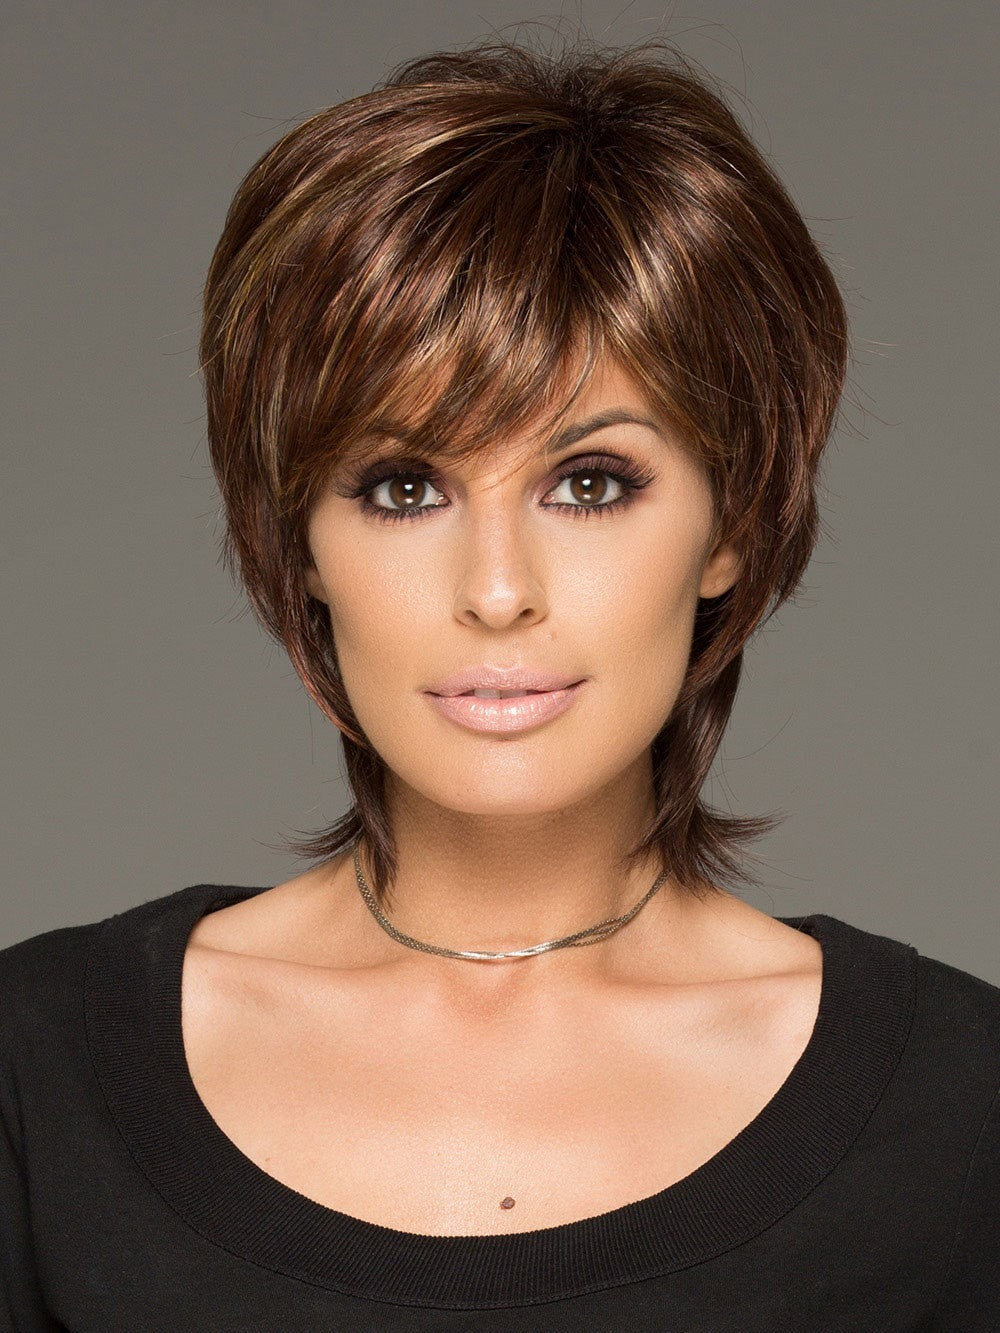 This tousled short wig has gorgeous layers and a long wispy nape for a new trend in today's fashion forward looks